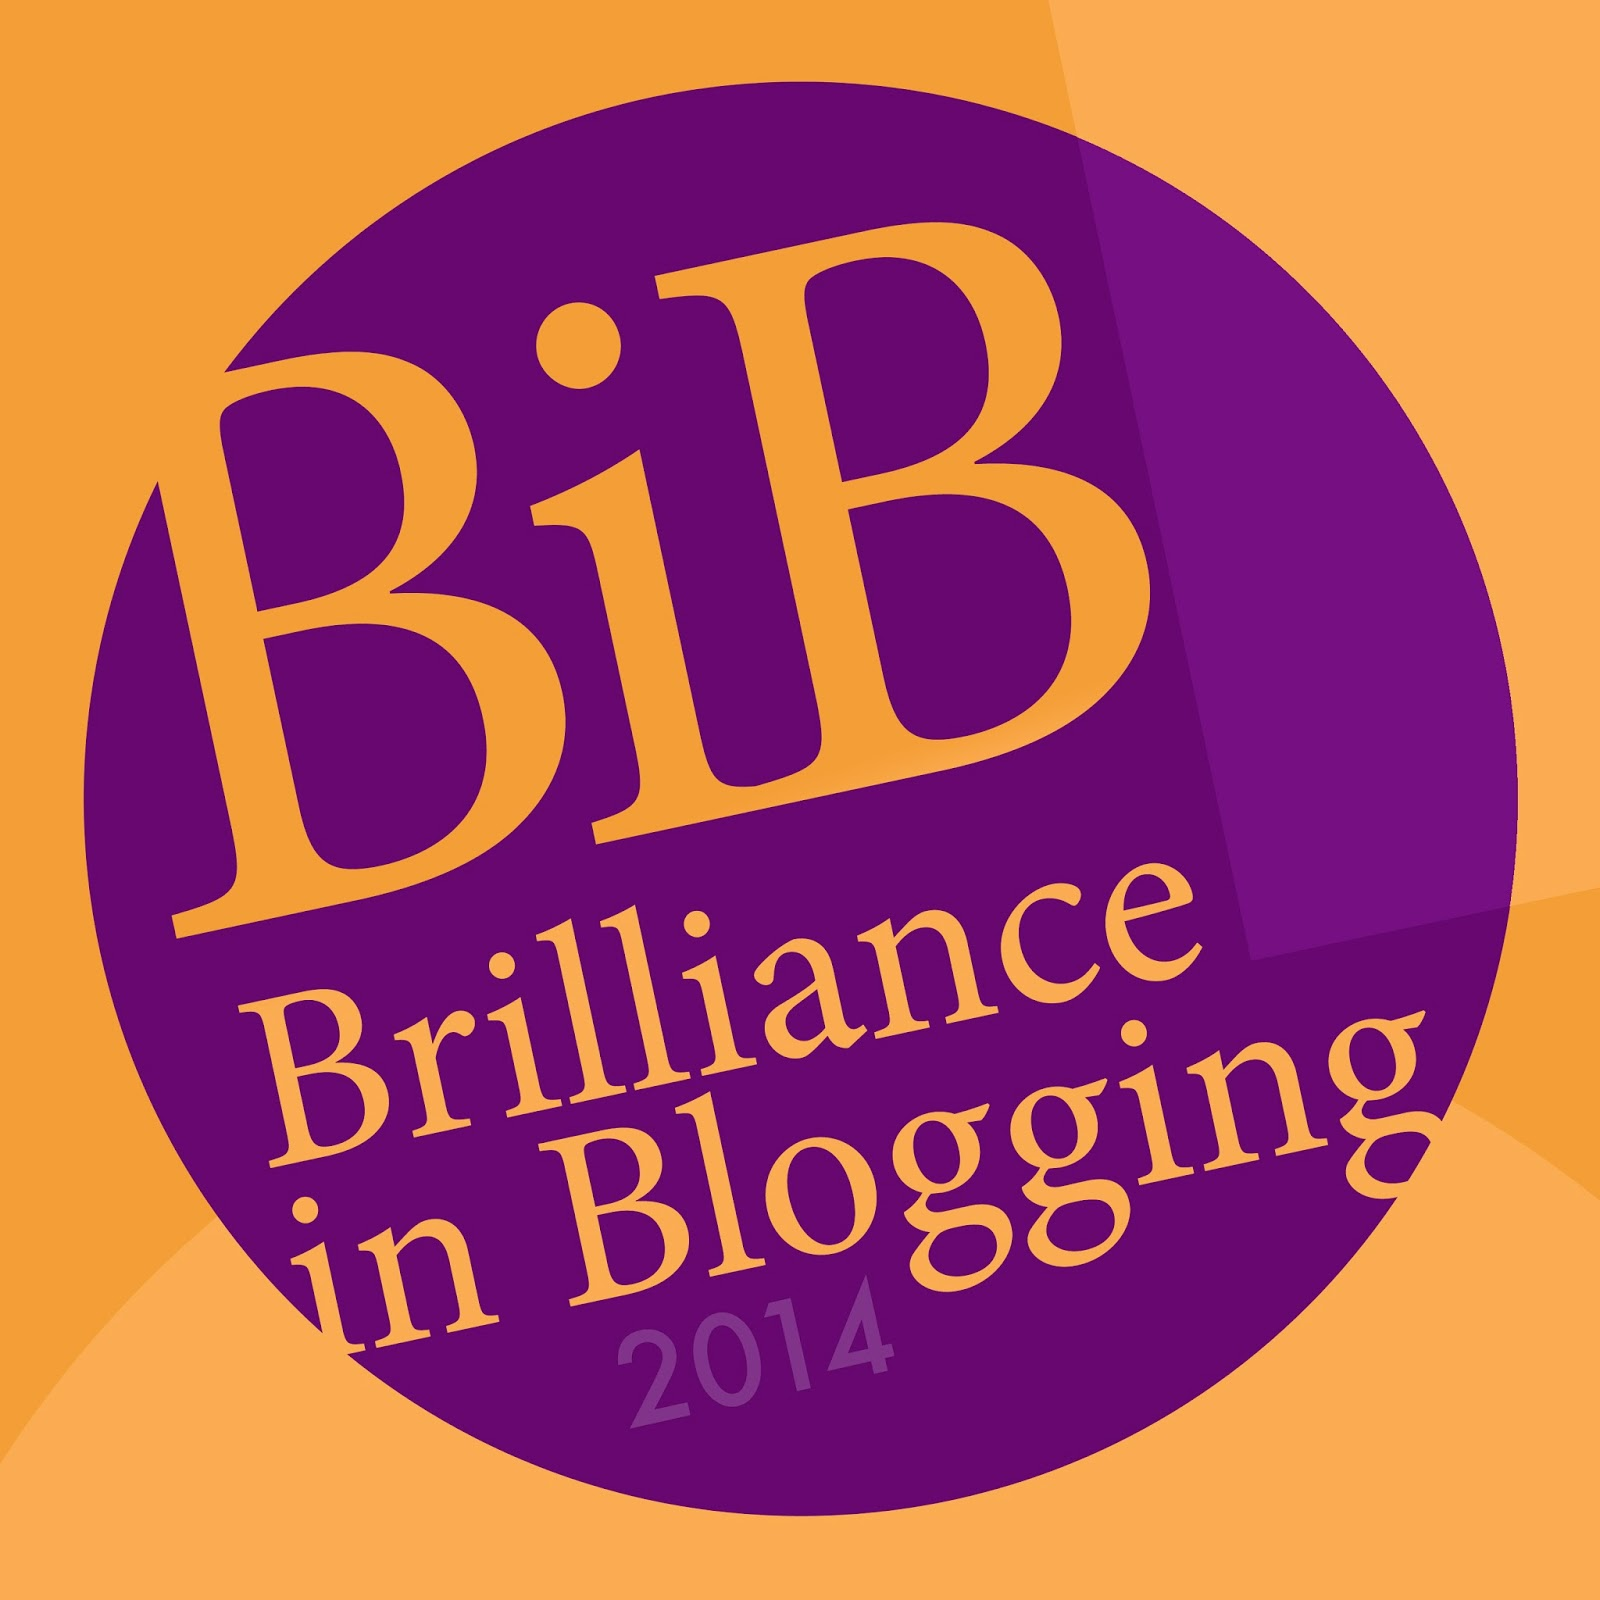 mamasVIB | The BiB Awards nominations have started …will you vote for me? (please) | bib awards | brilliance in blogging | brit mums | britmumslive | vote |nominations | mamasVIb | new blog | magazine editors | bonita turner | votes | BritMums | britmums blogging conference | blogging |bloggers |mummy bloggers | mama | event